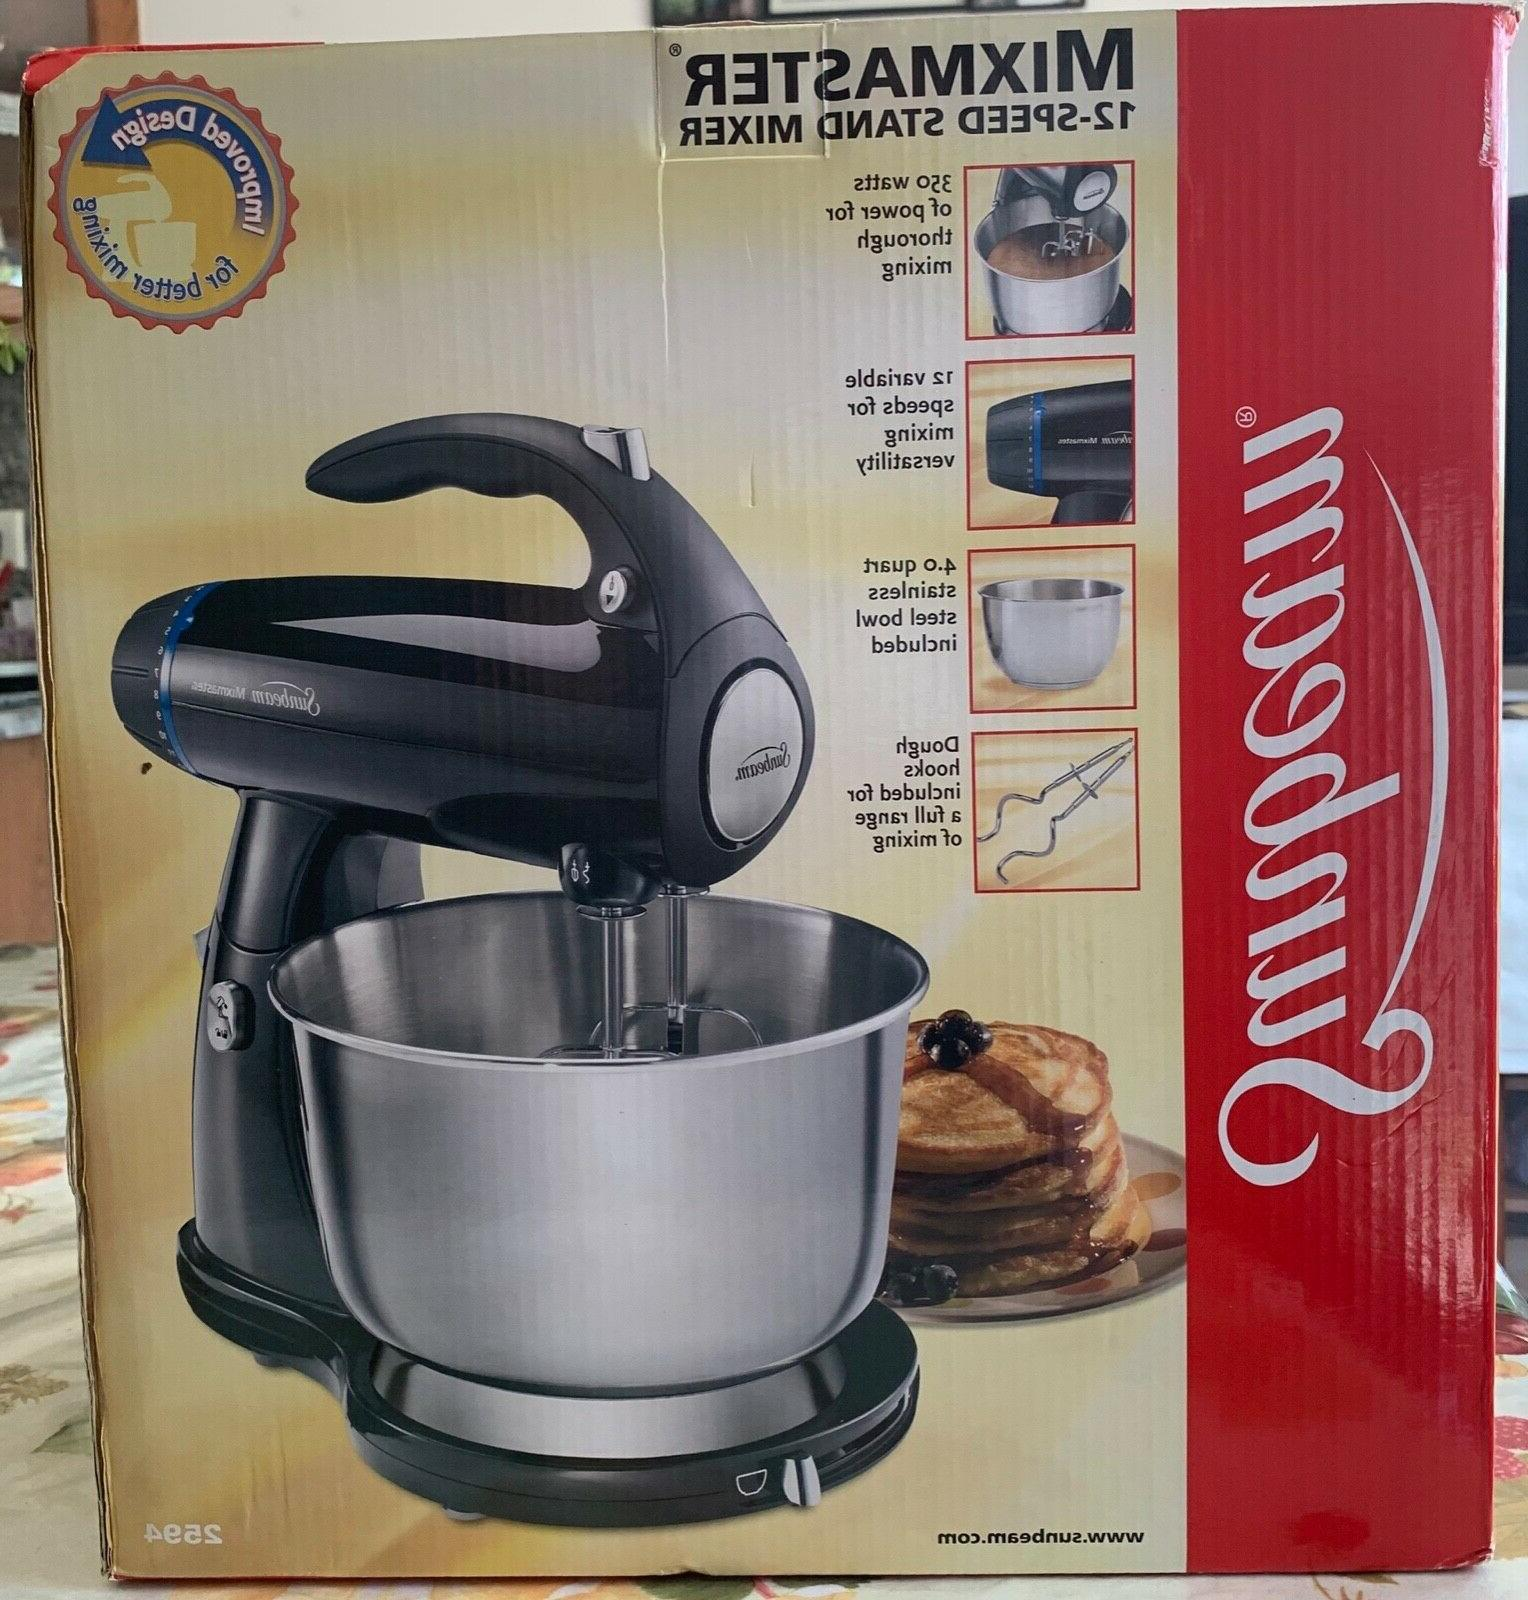 4 qt 12 speed stand mixer stainless